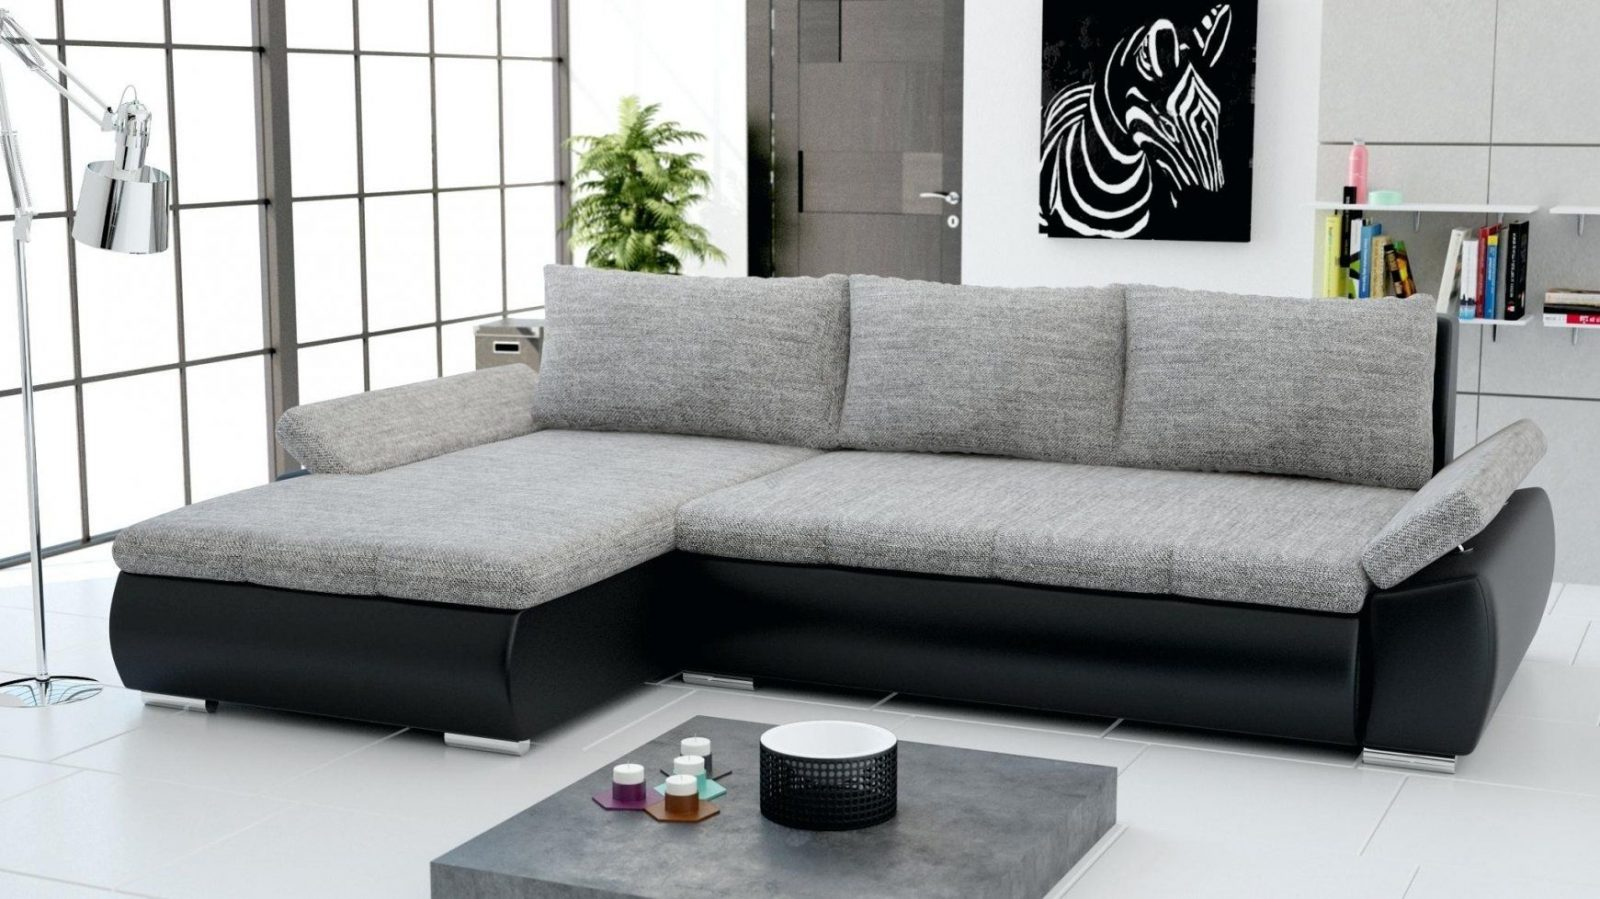 Big Sofa Mit Schlaffunktion Awesome Muster Um Big Sofa Mit